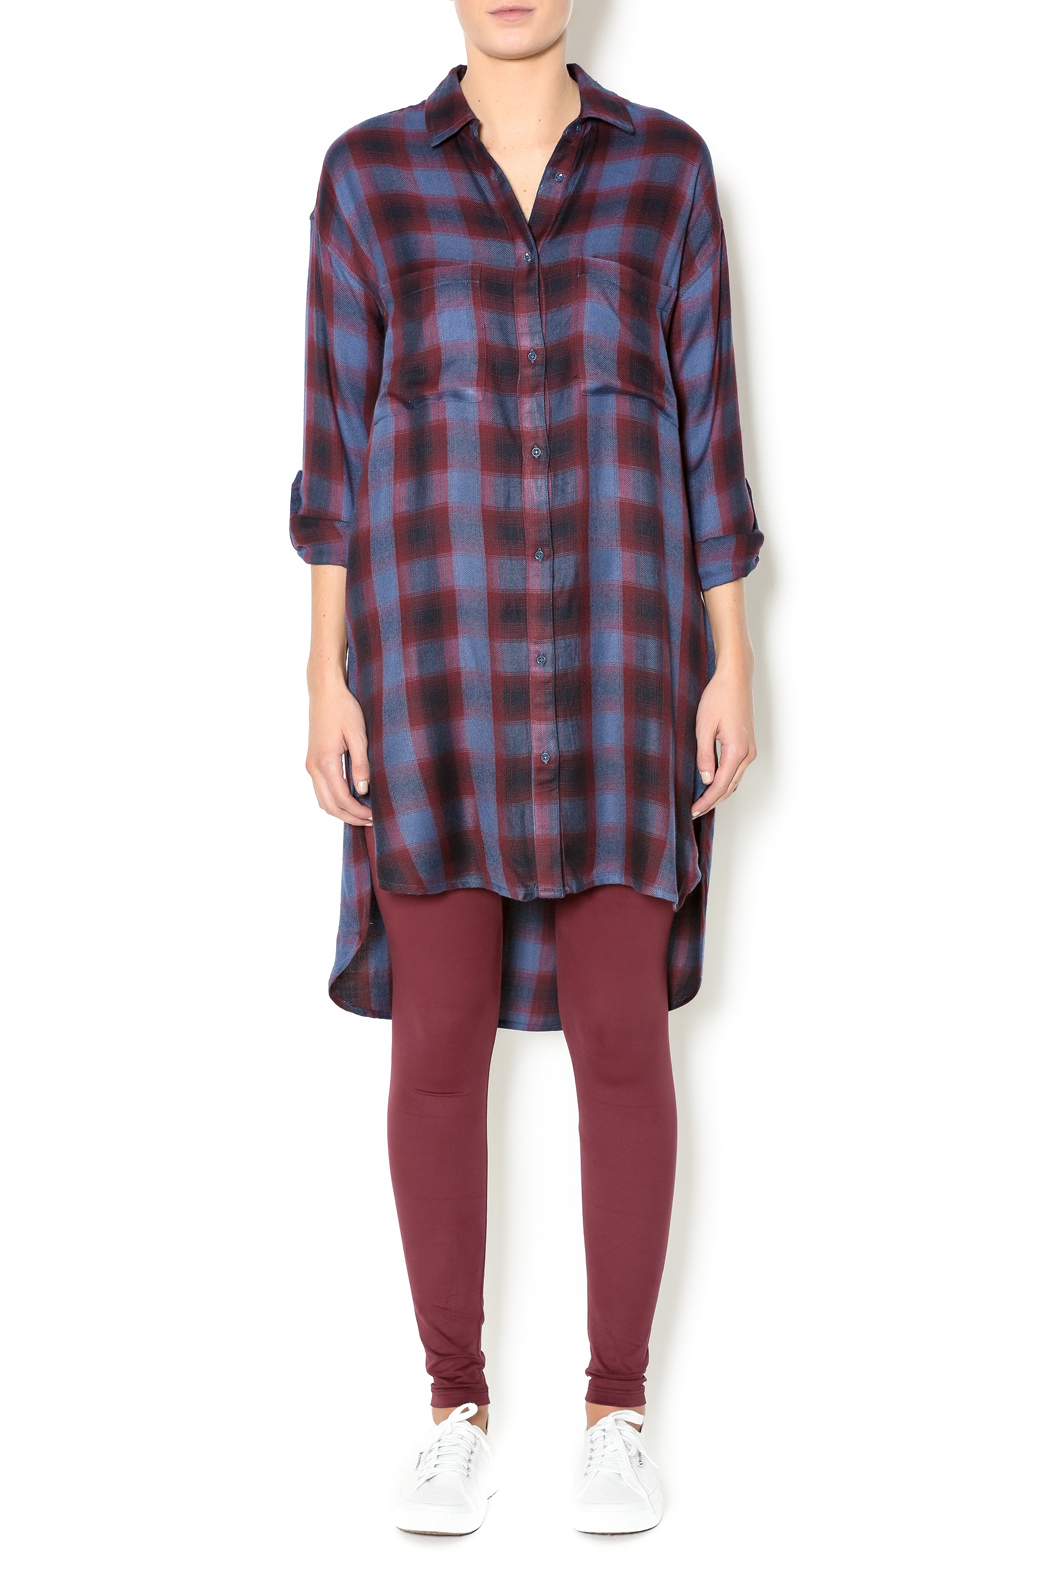 Gentle Fawn Plaid Shirt Dress - Front Full Image